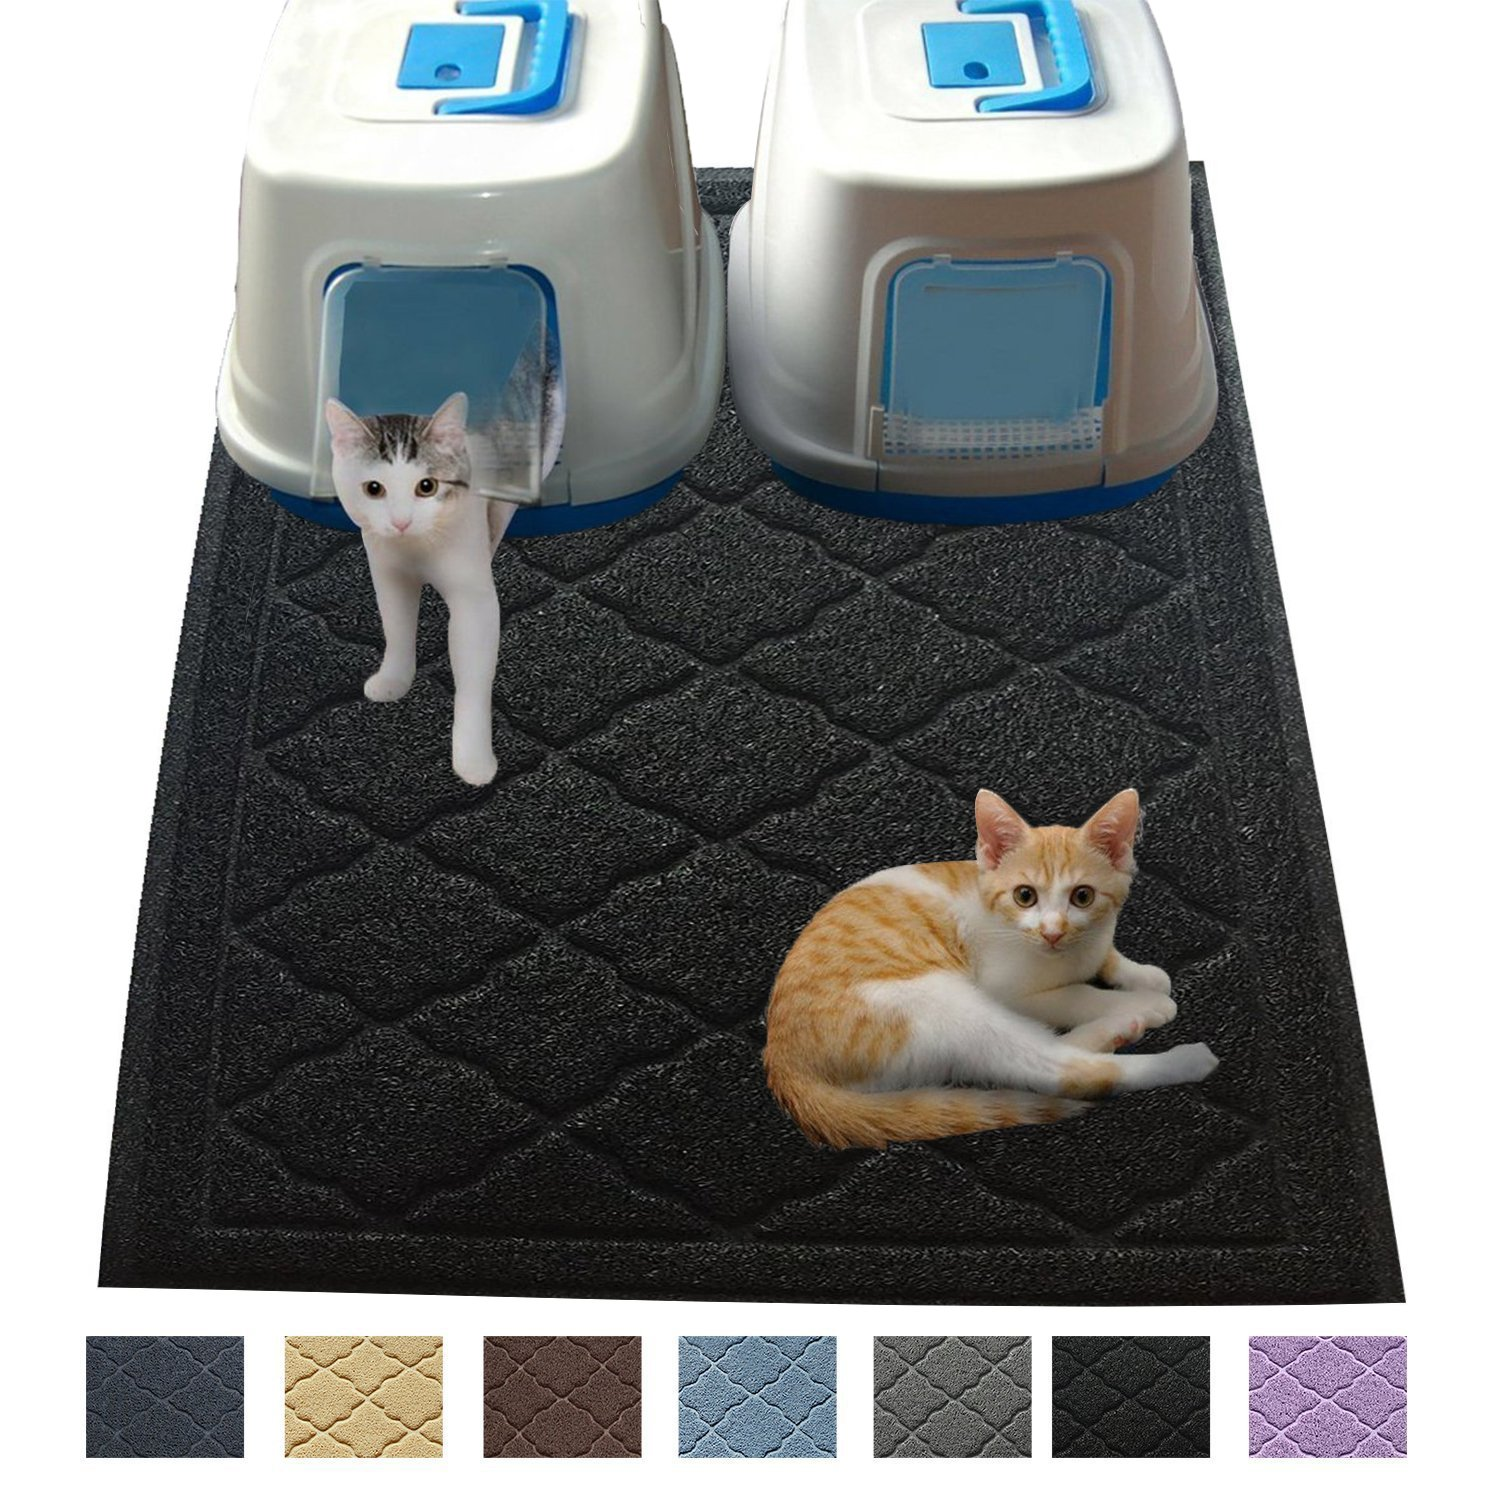 Black Jumbo Litter Mat 47  x 36  Cat Litter Mat Traps Messes, Easy Clean, Durable, Phthalate Free, Litter Box Mat with Scatter Control Soft on Kitty Paws